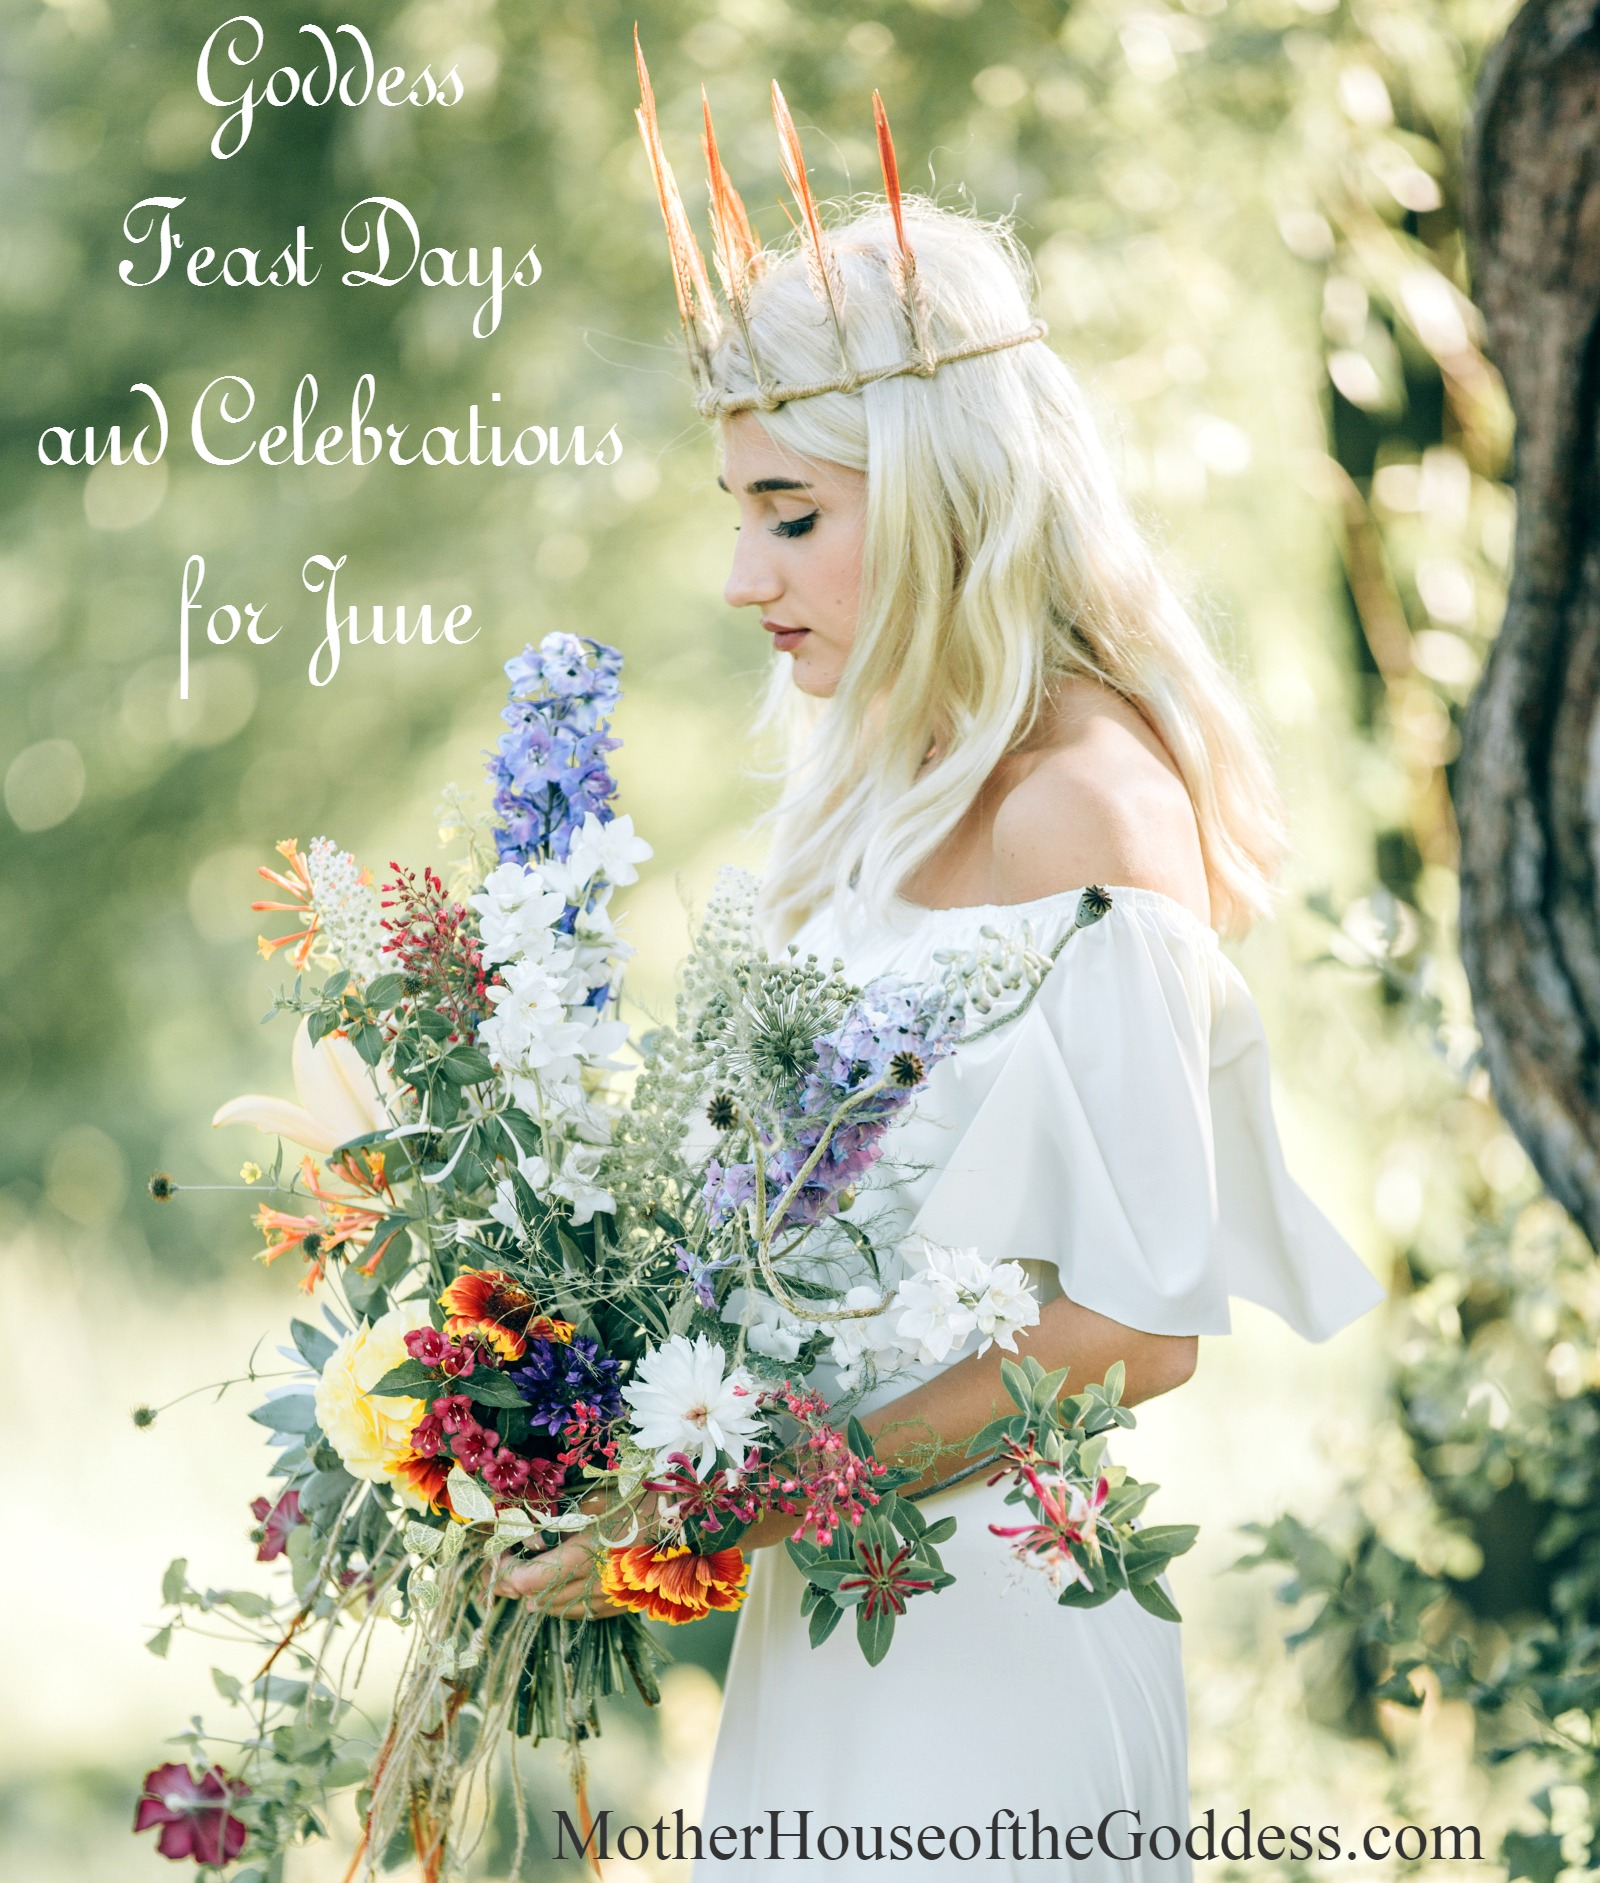 Goddess Feast Days and Celebrations for June on MotherHouse of the Goddess